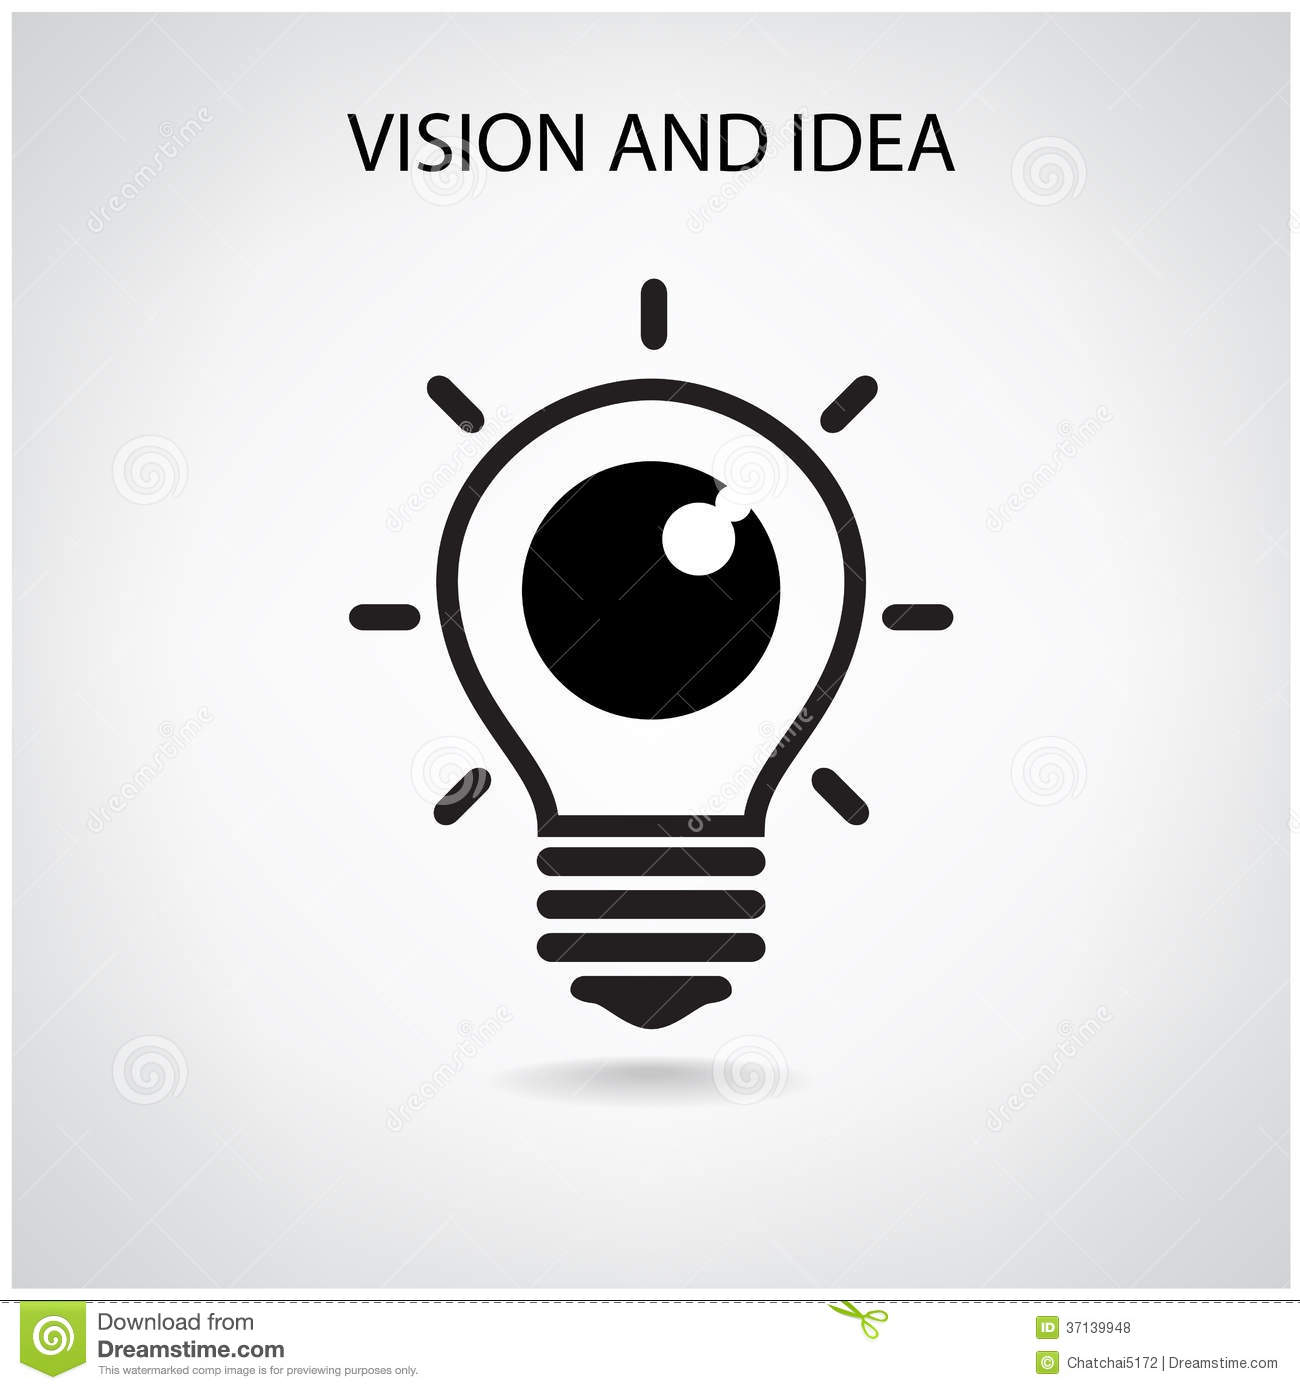 Vision and ideas sign,eye icon,light bulb symbol ,business concept ...